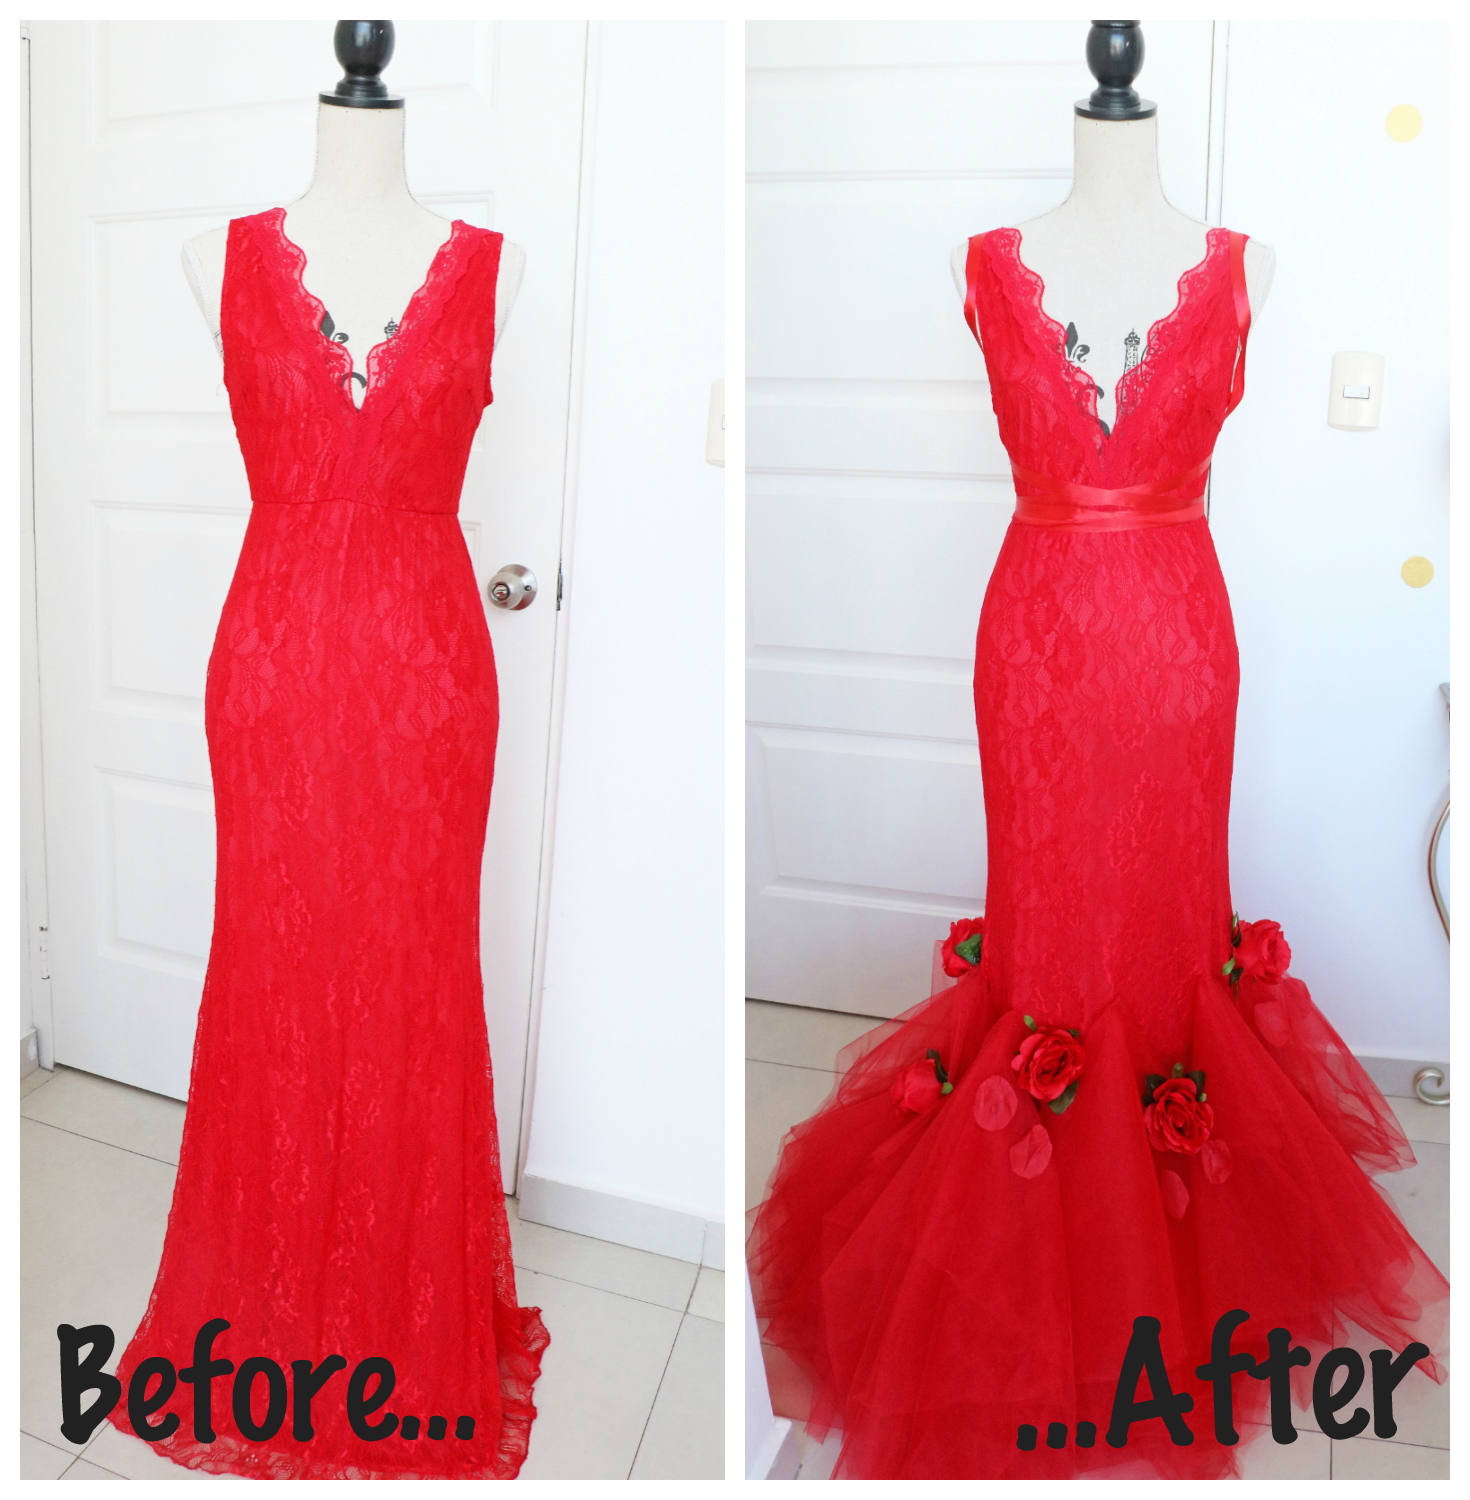 DIY Dress makeover inspired by the Enchanted Rose from Beauty and the Beast! Click through for full tutorial